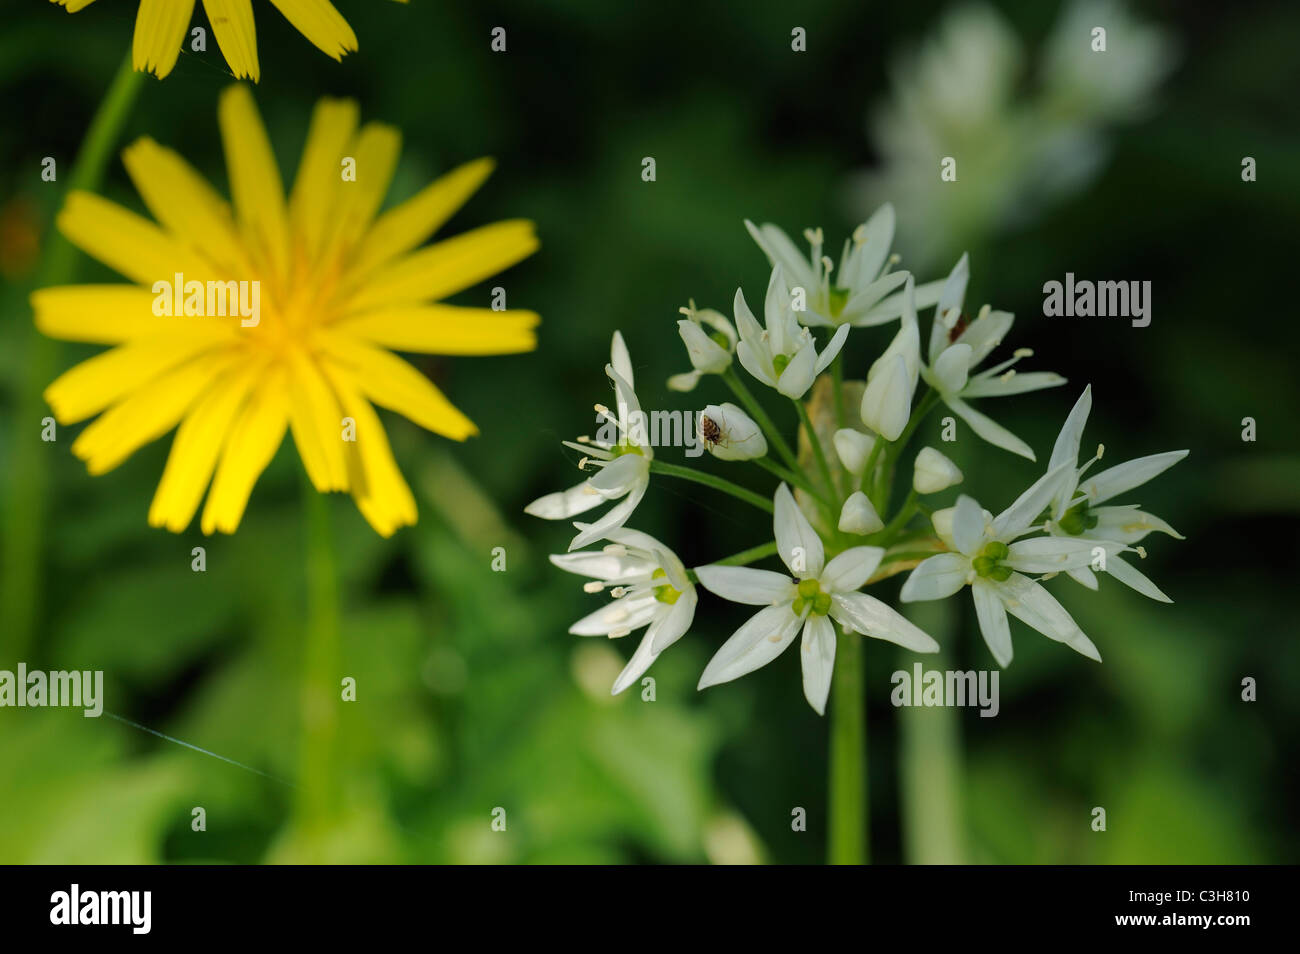 Ornithogalum Type Of Flower With Small Spider On It And Yellow Stock